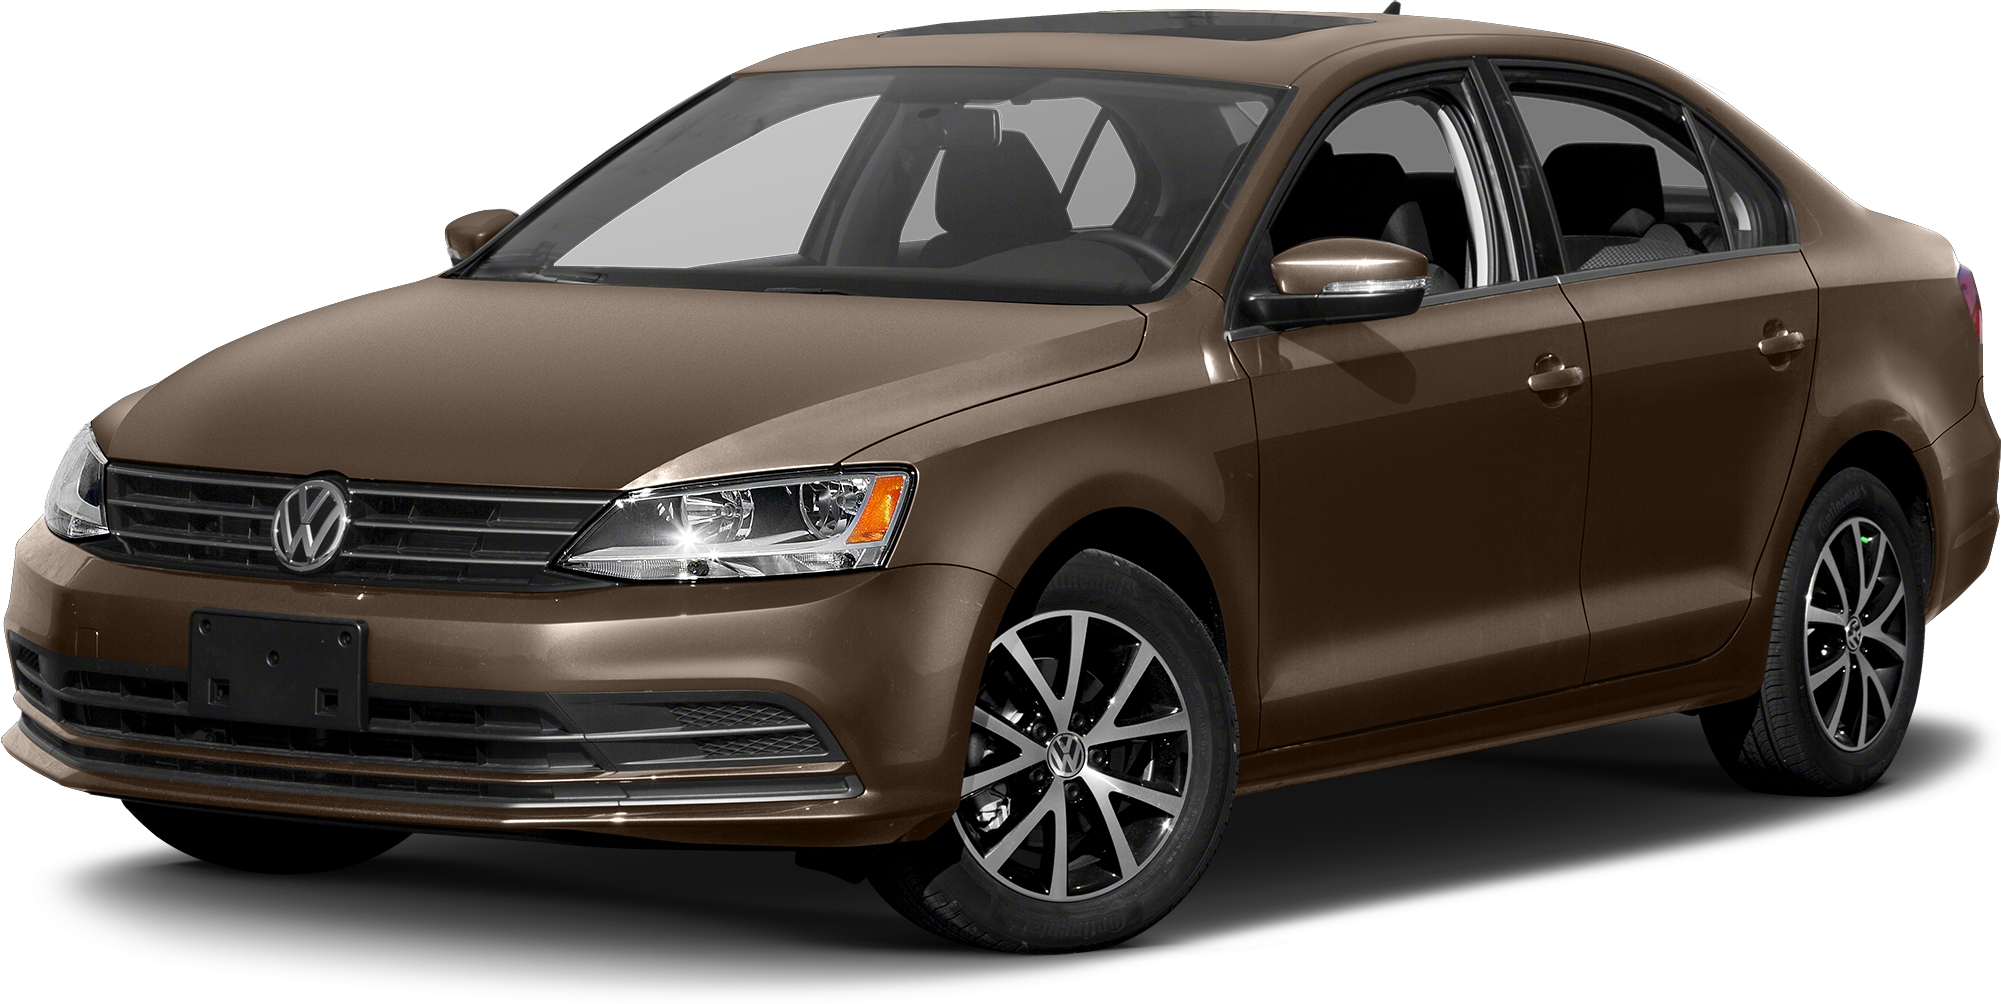 2017 volkswagen jetta s stratford ct 16398981. Black Bedroom Furniture Sets. Home Design Ideas